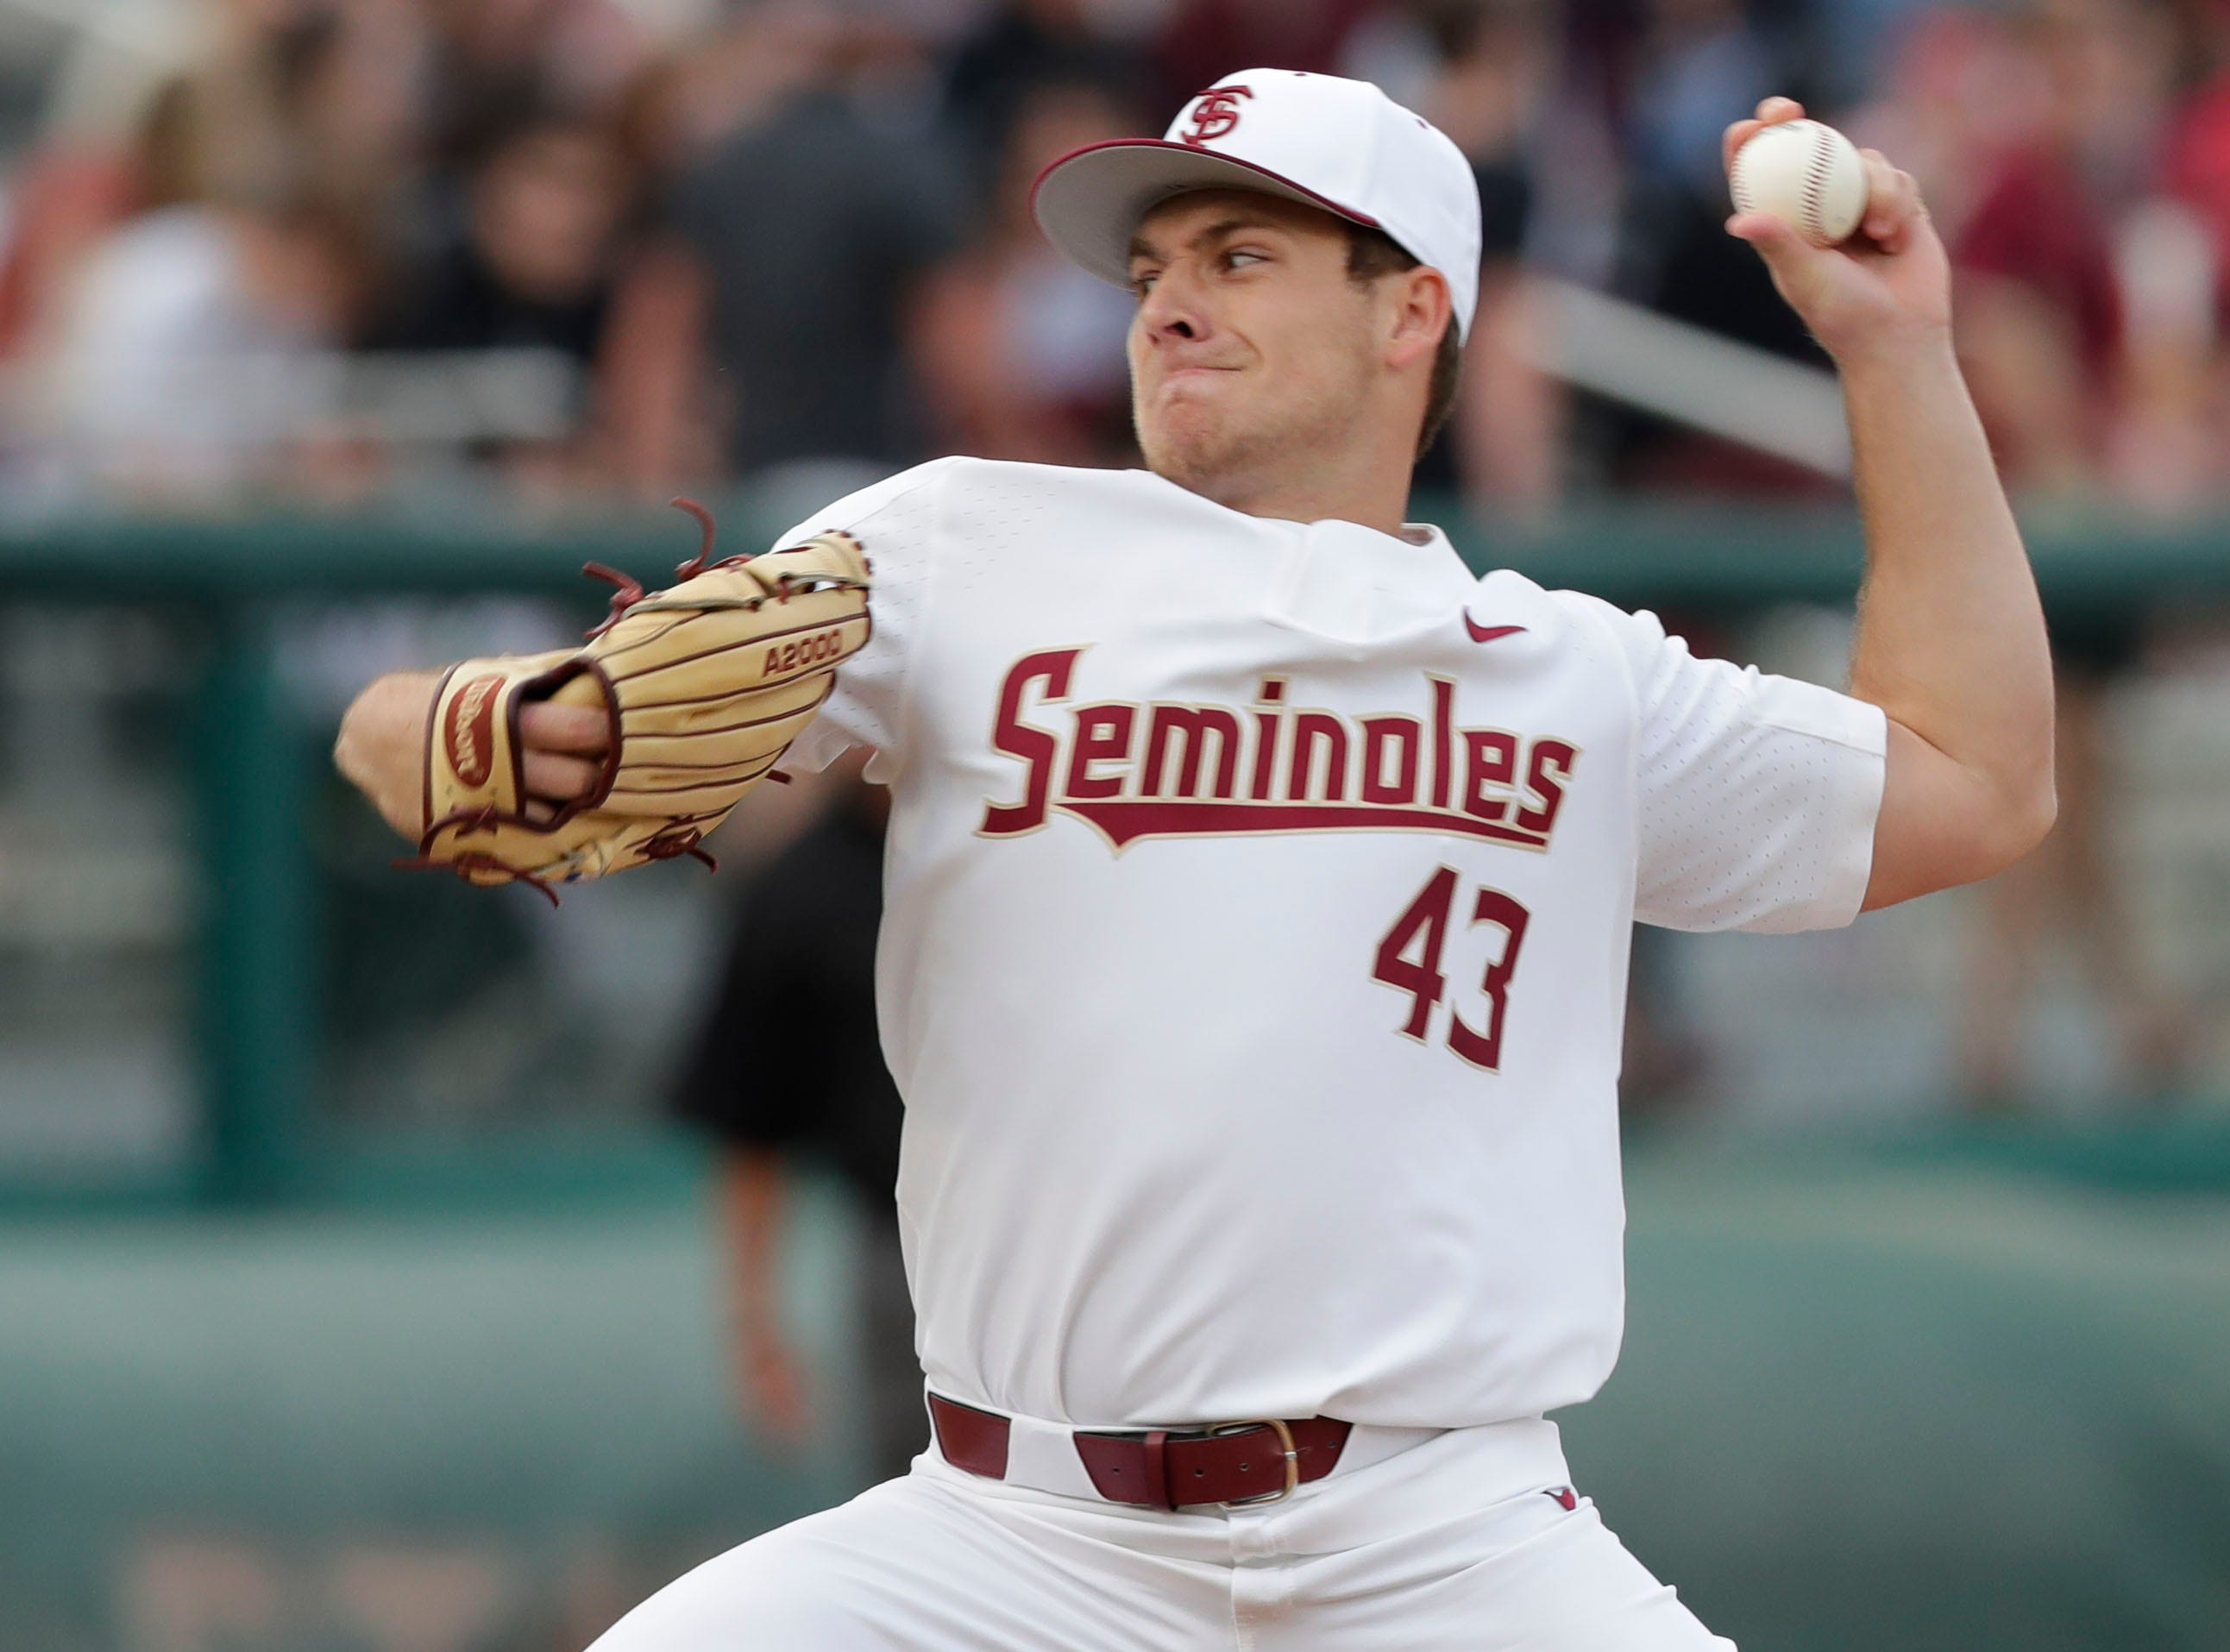 Florida State Seminoles left handed pitcher/Outfielder Drew Parrish (43) throws a pitch as the Florida State Seminoles host the Maine Black Bears in the 2019 season opener game, Friday Feb. 15, 2019.